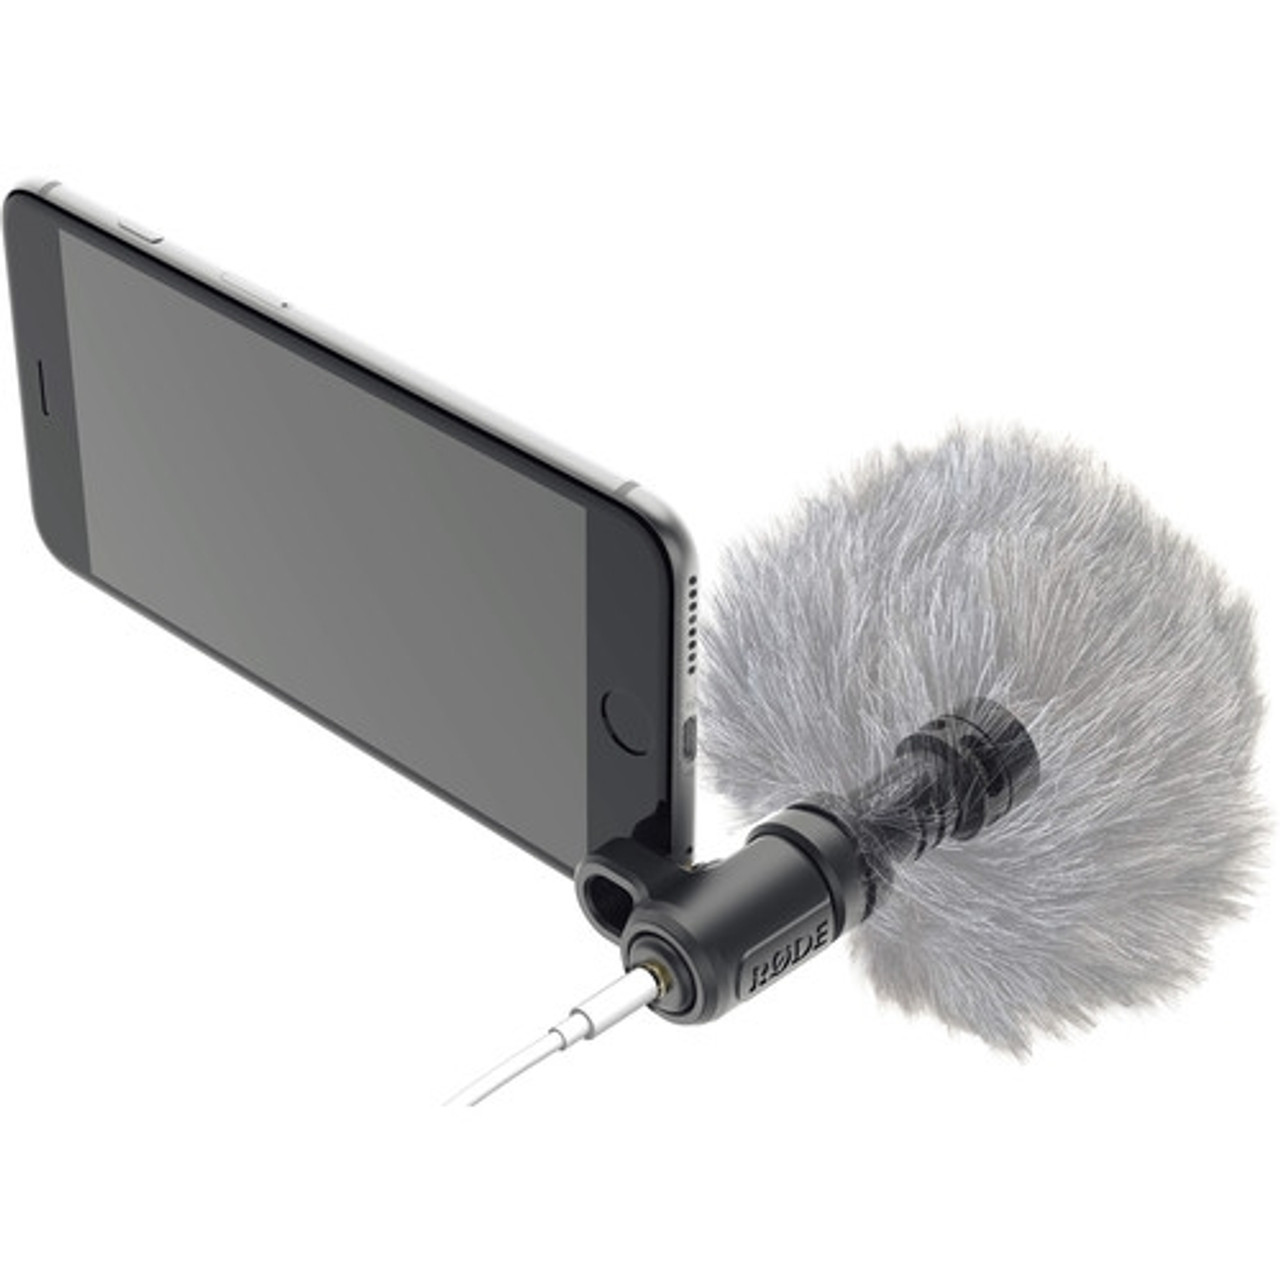 NEW VideoMic Me Directional Microphone For Smart Phones VideoMic Me Directional